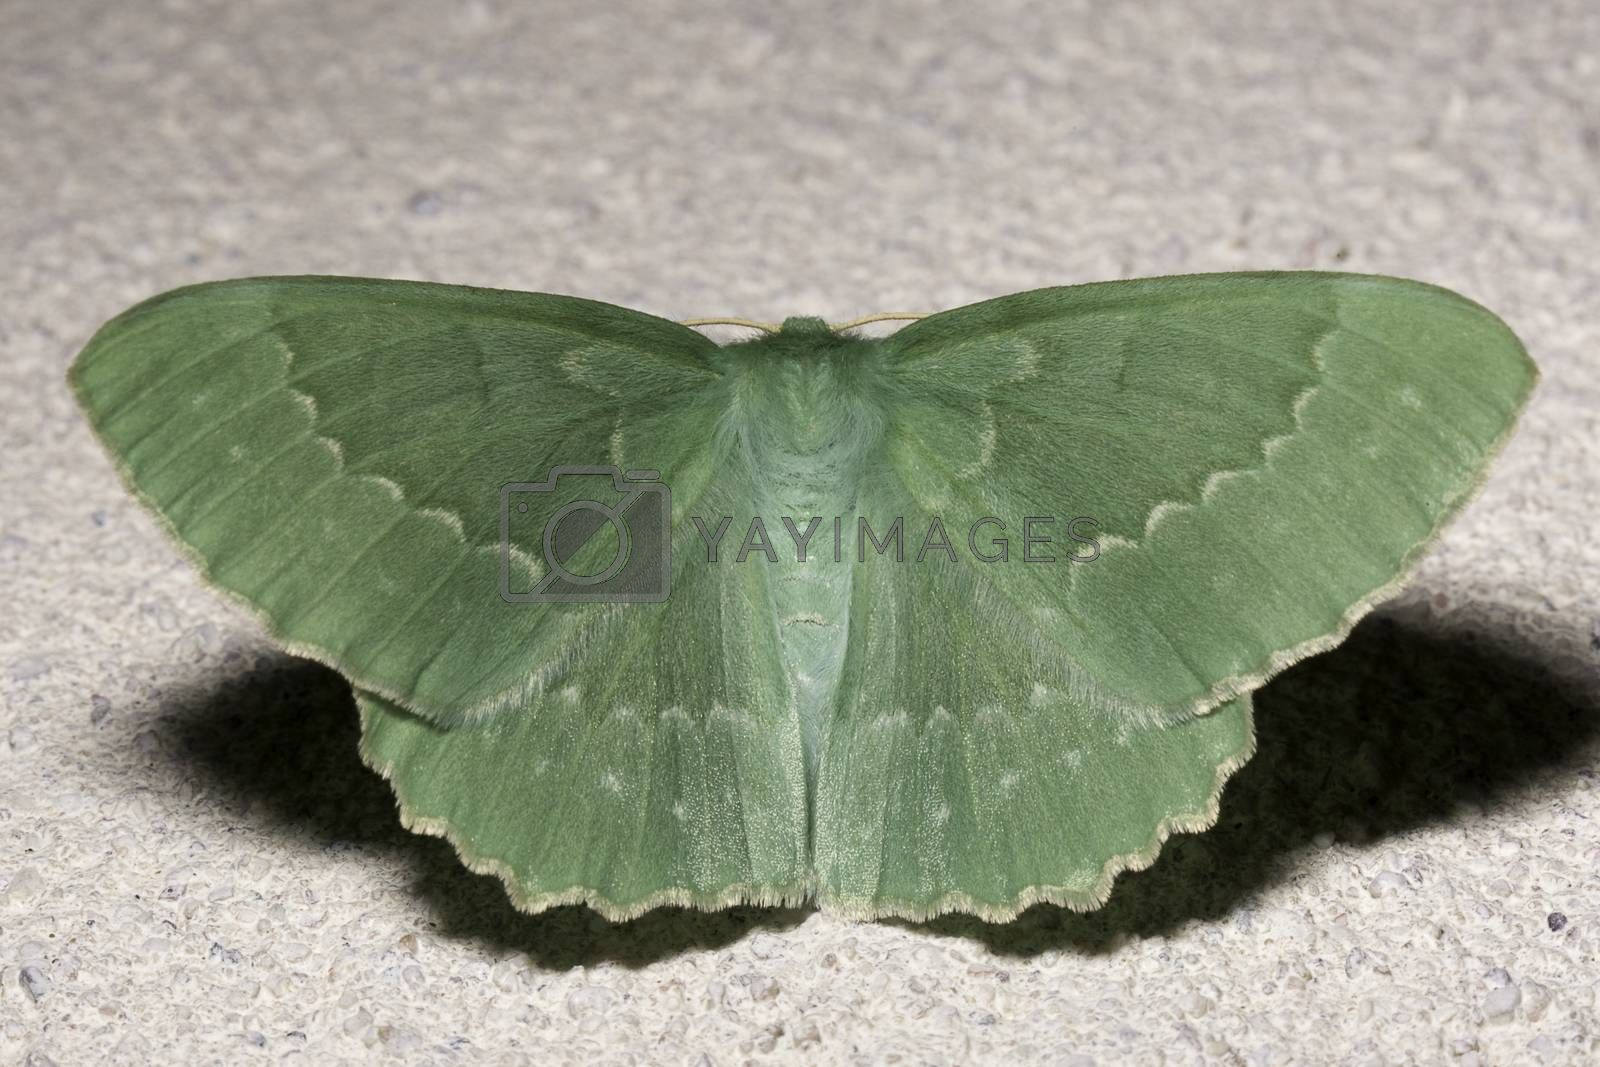 Large Emerald Moth Extremely Close Up.